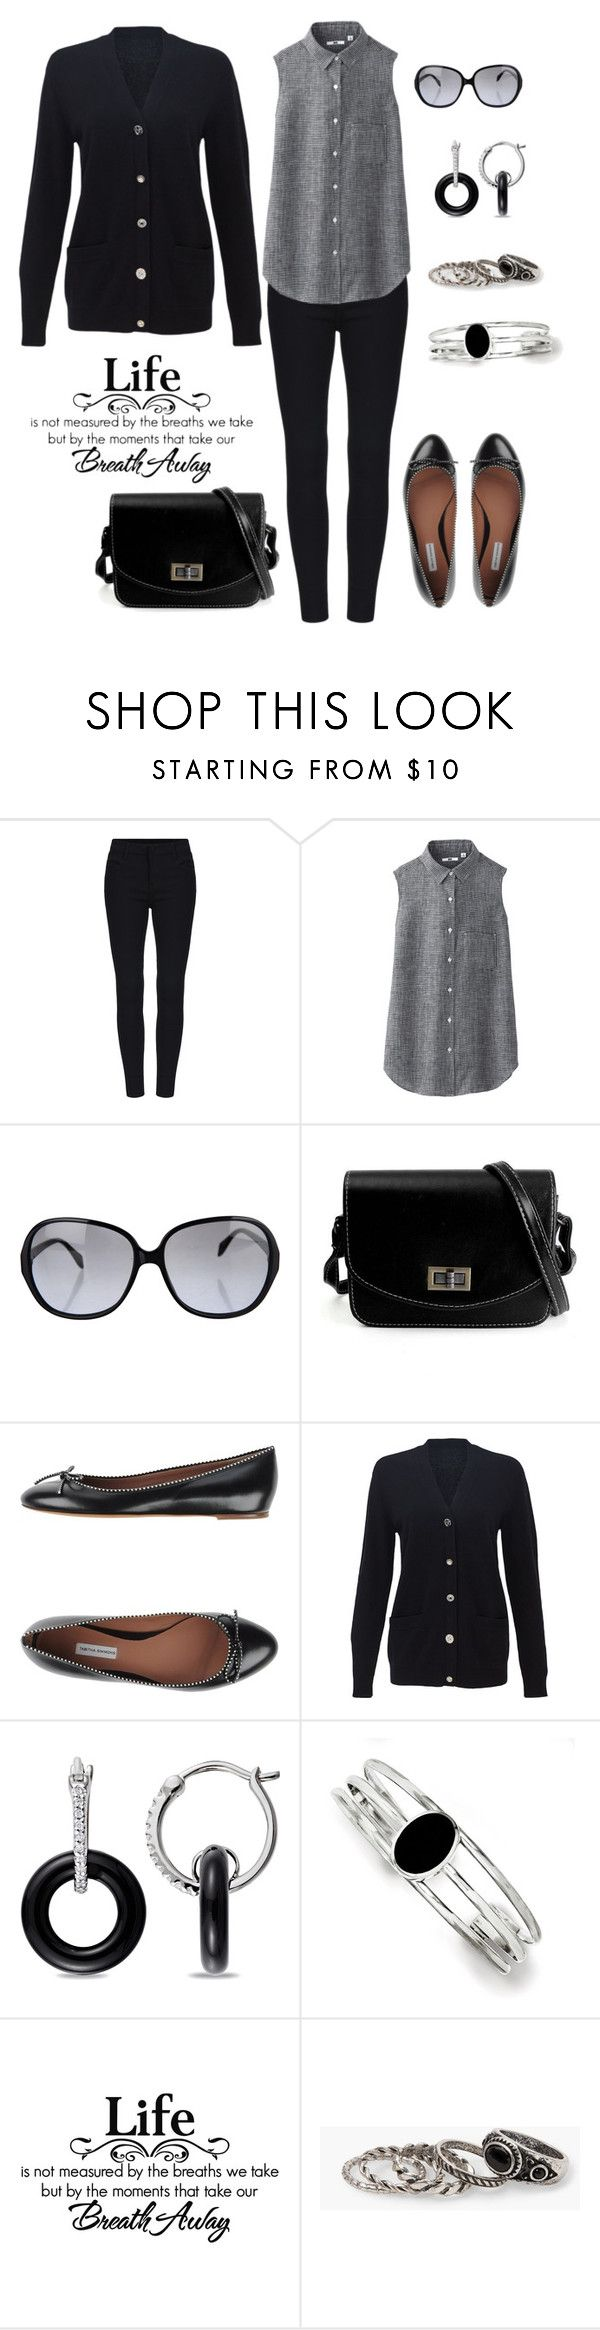 """""""Untitled #610"""" by gallant81 liked on Polyvore featuring ..."""